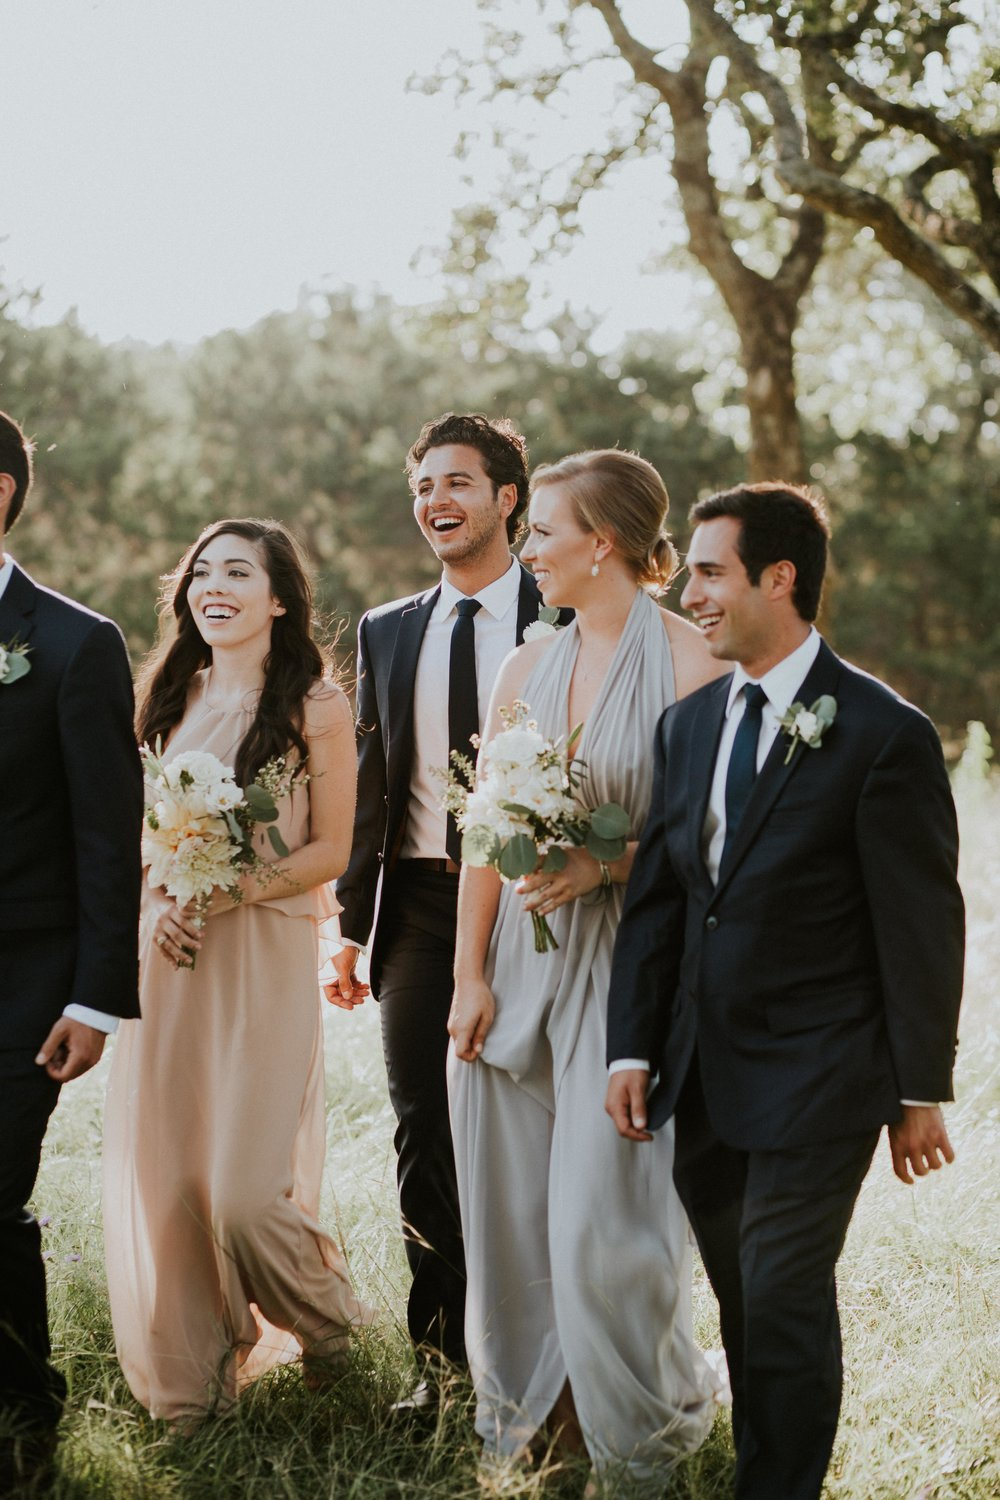 CarolineChase-Wedding40.jpg